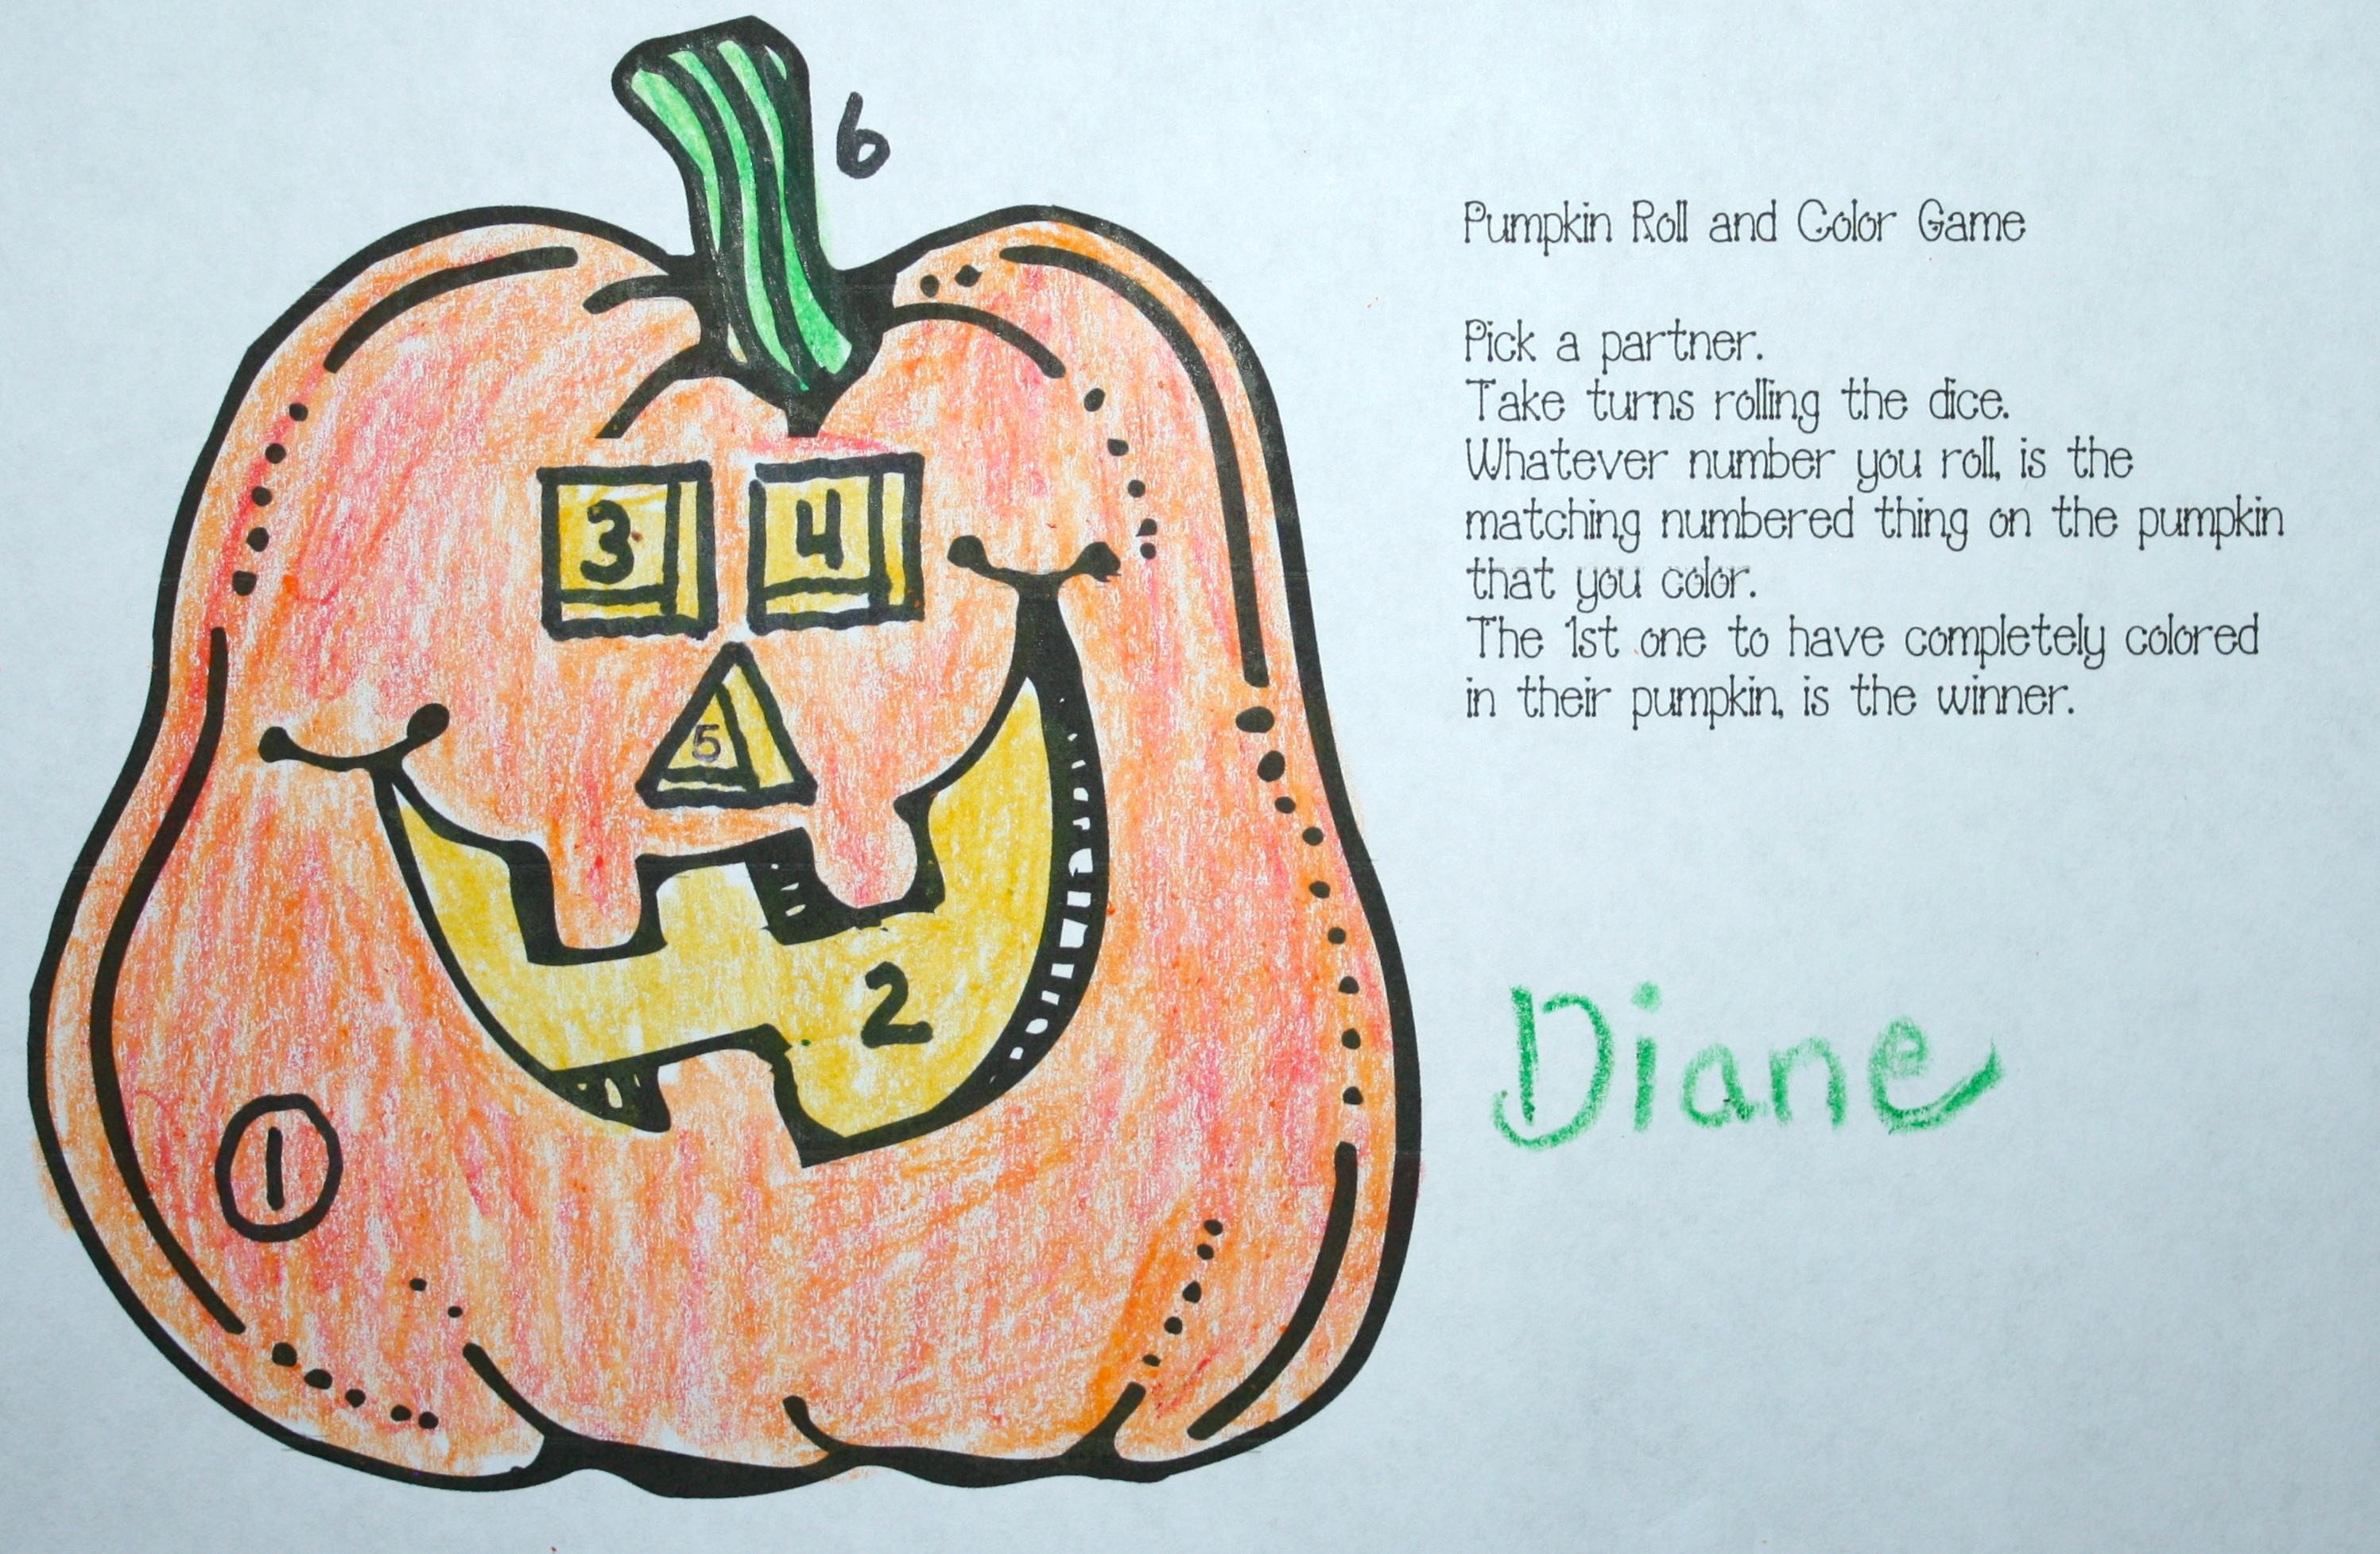 pumpkin activities, pumpkin games, pumpkin math, math games, pumpkin centers, math centers, counting games, counting pumpkins, common core pumpkins, dice games, october games, halloween games, halloween activities,